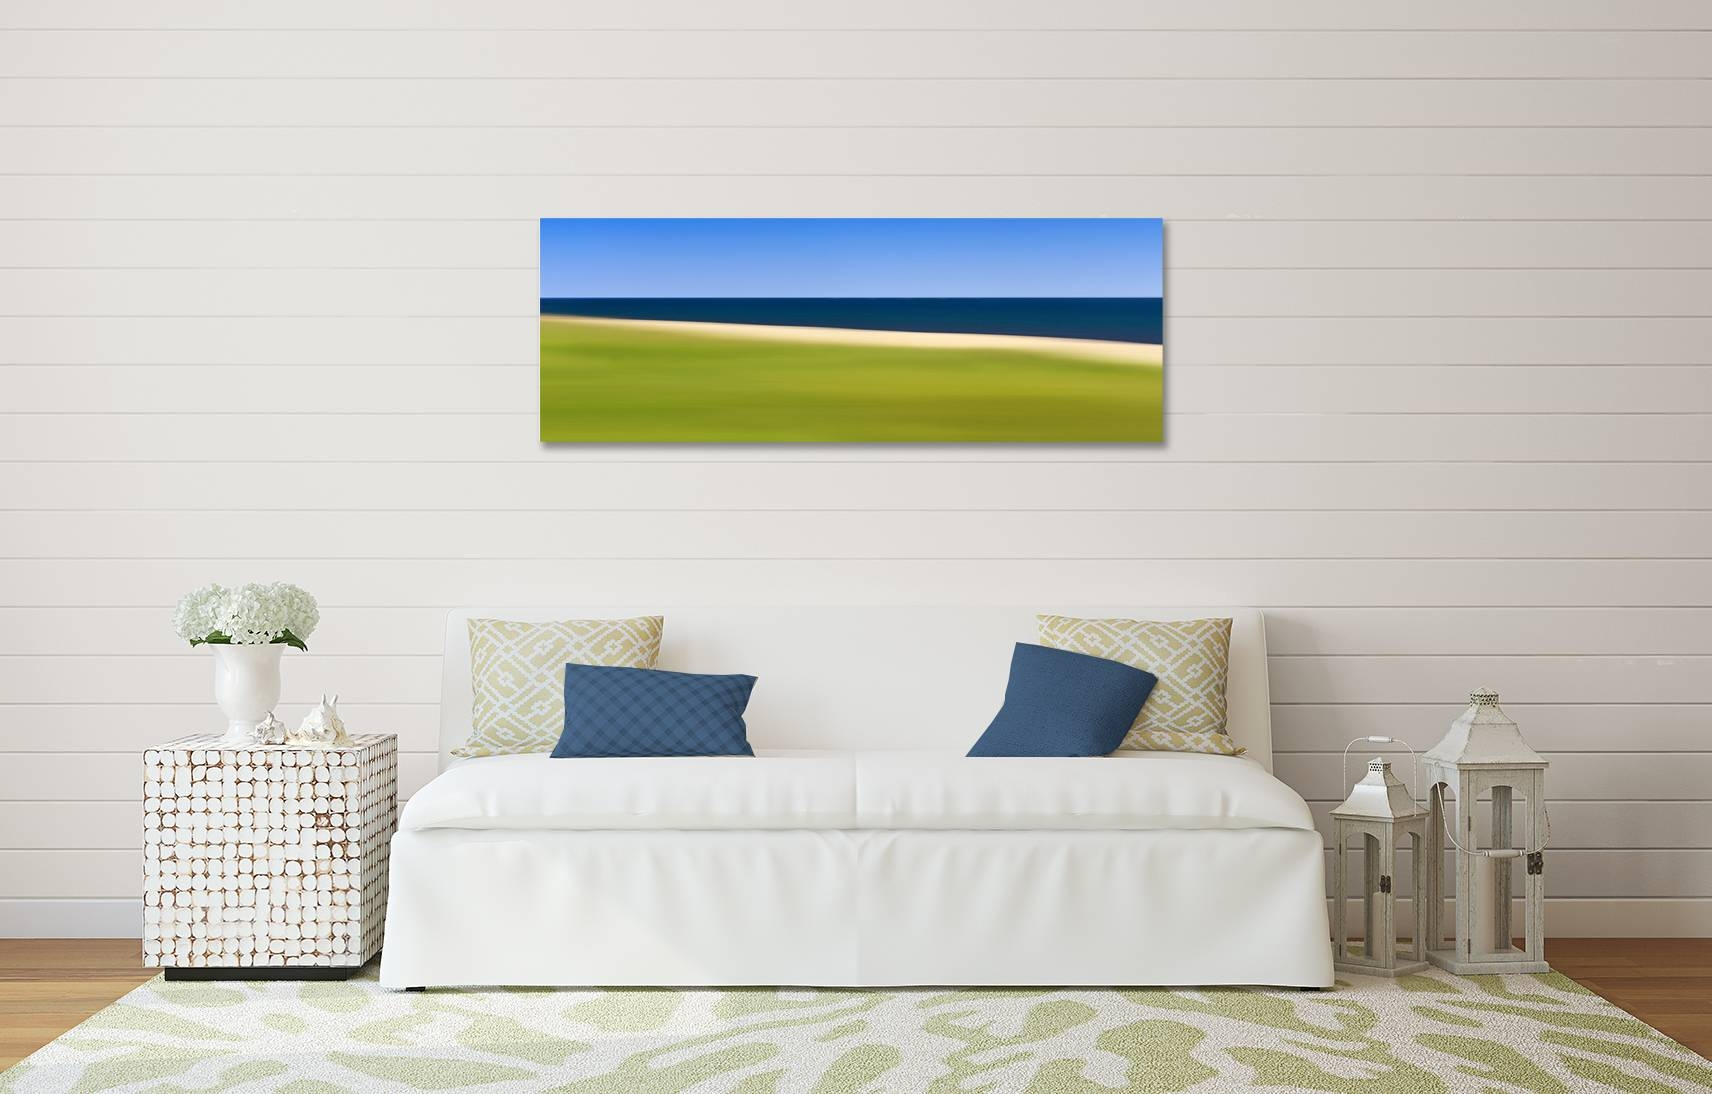 Fine Art Prints For Sale | Abstract Art, Large Canvas Wall Art With 2018 Coastal Wall Art (View 5 of 12)